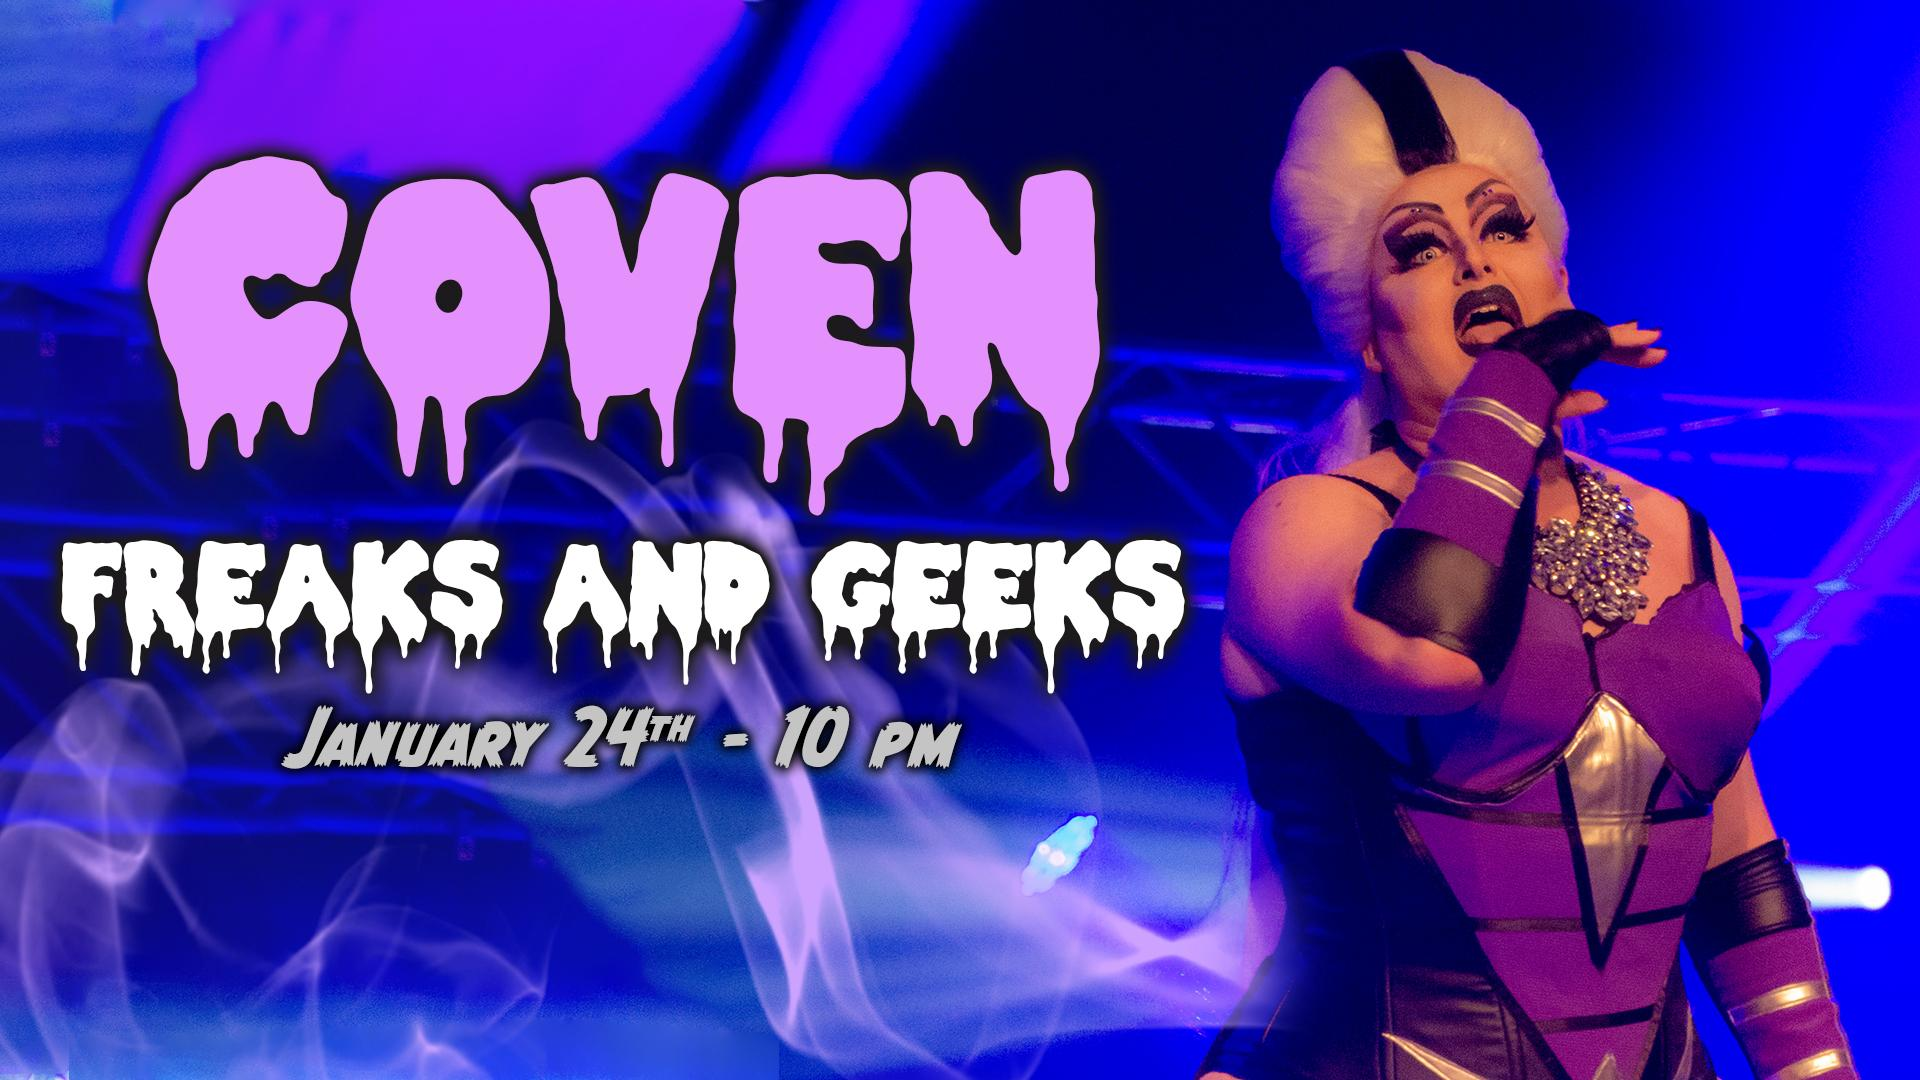 Freaks and Geeks - COVEN Drag Show